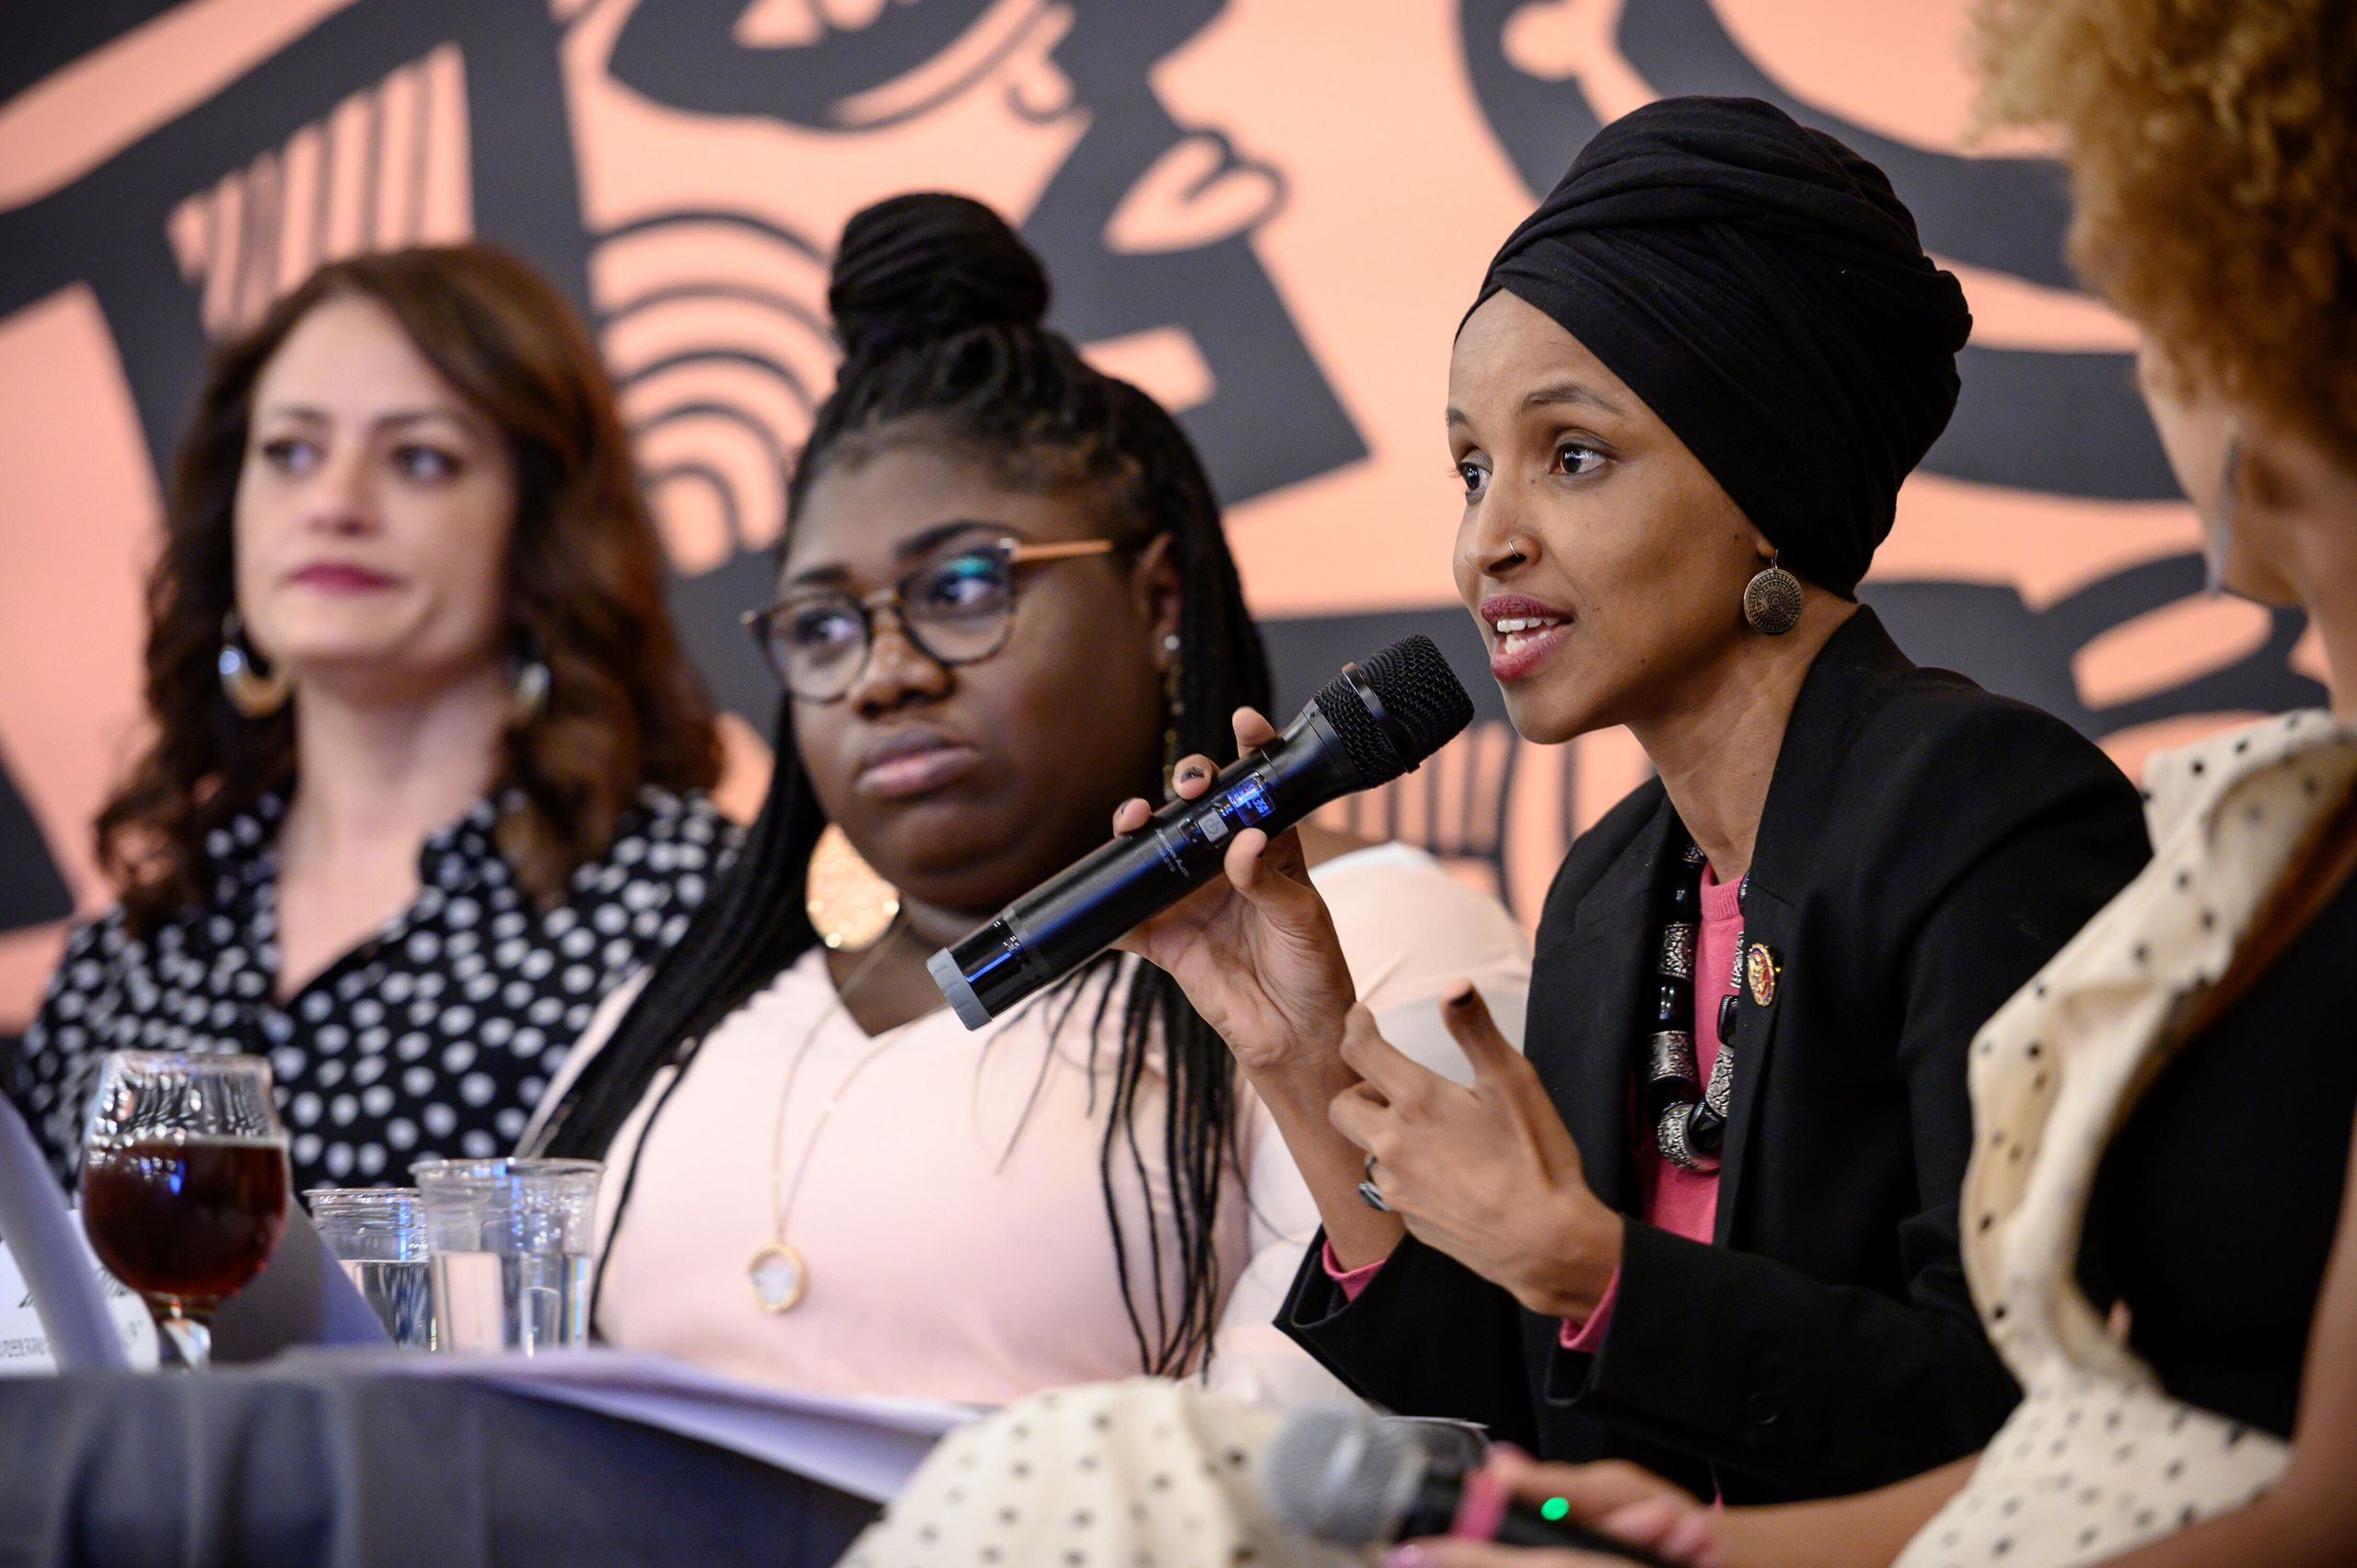 Omar speaks on a panel during the Paycheck Fairness and Women's Workforce Development Town Hall in Minneapolis on April 24, 2